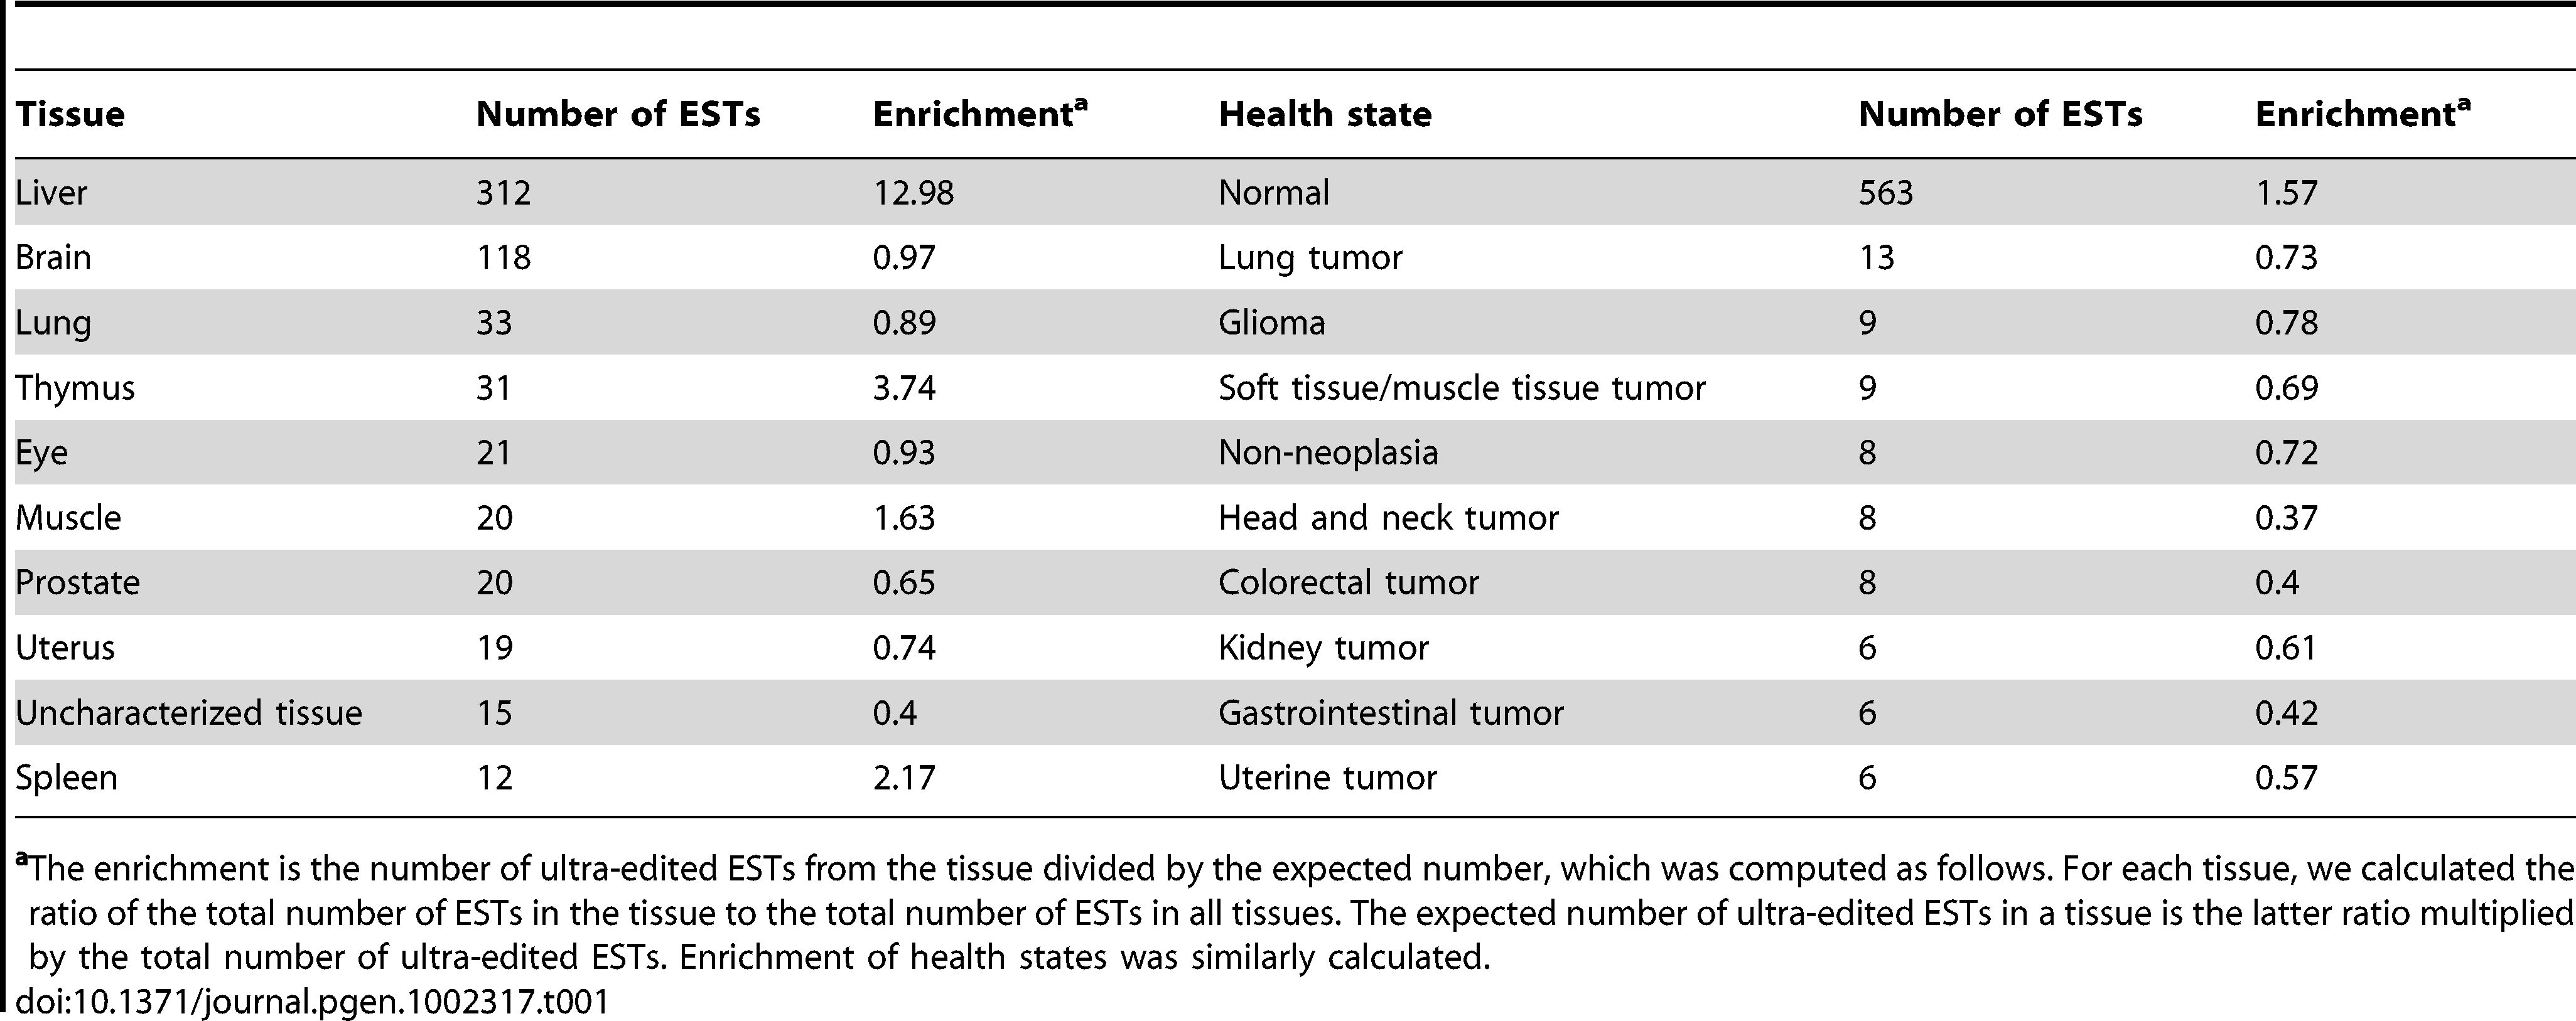 Top tissues and health states containing ultra-edited ESTs.